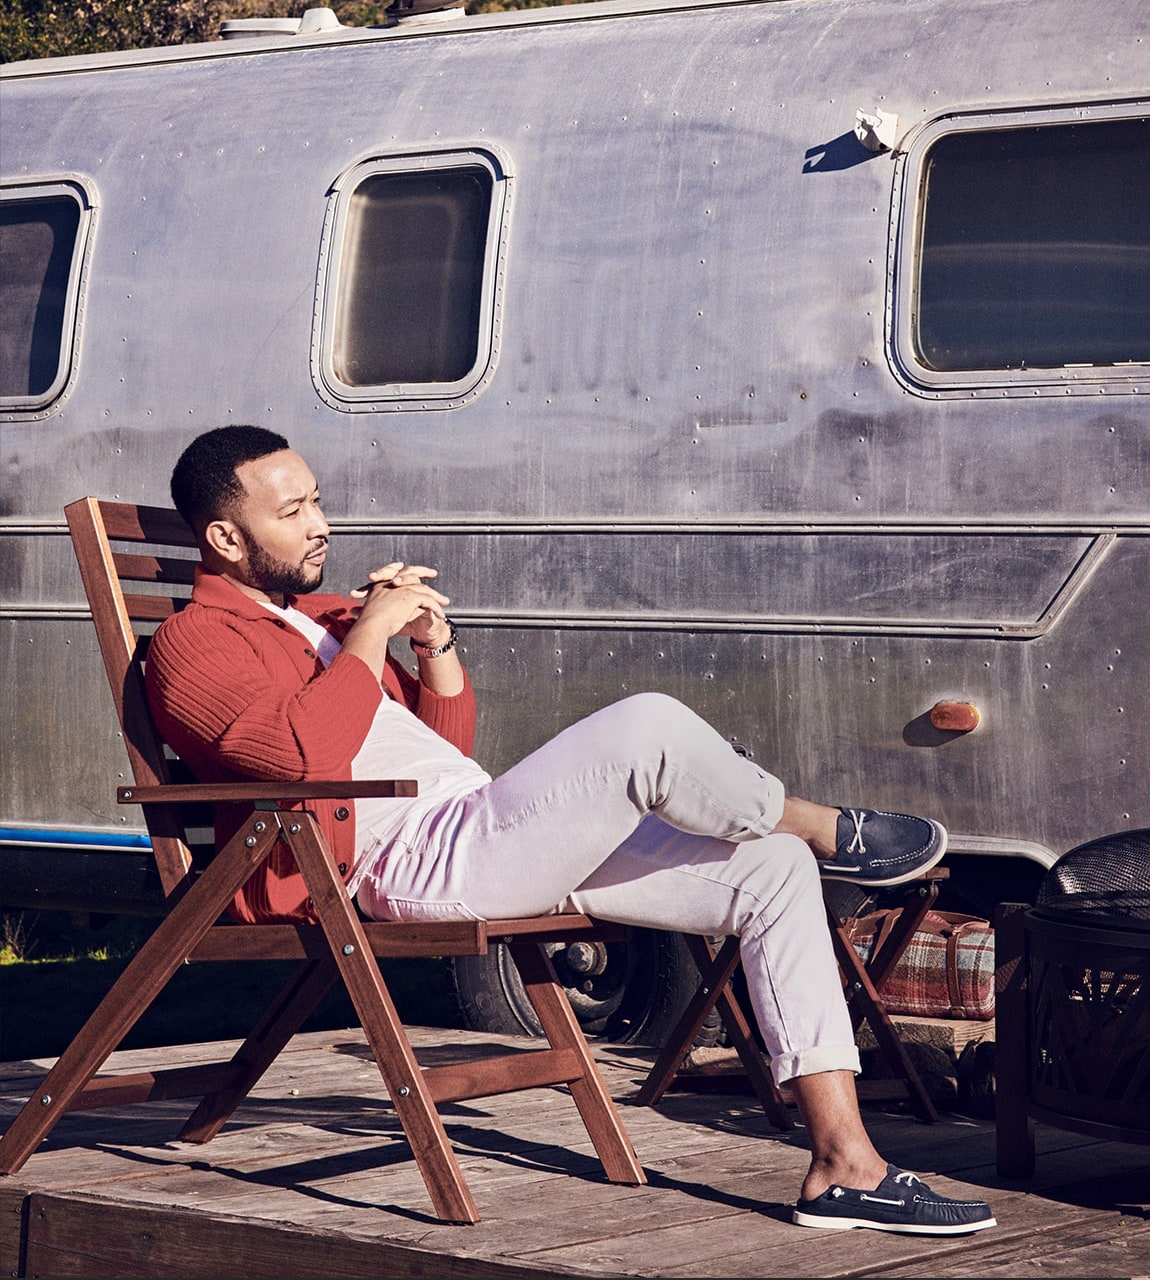 John Legend sitting on in a chair next to a trailer, wearing Sperry Boat Shoes.